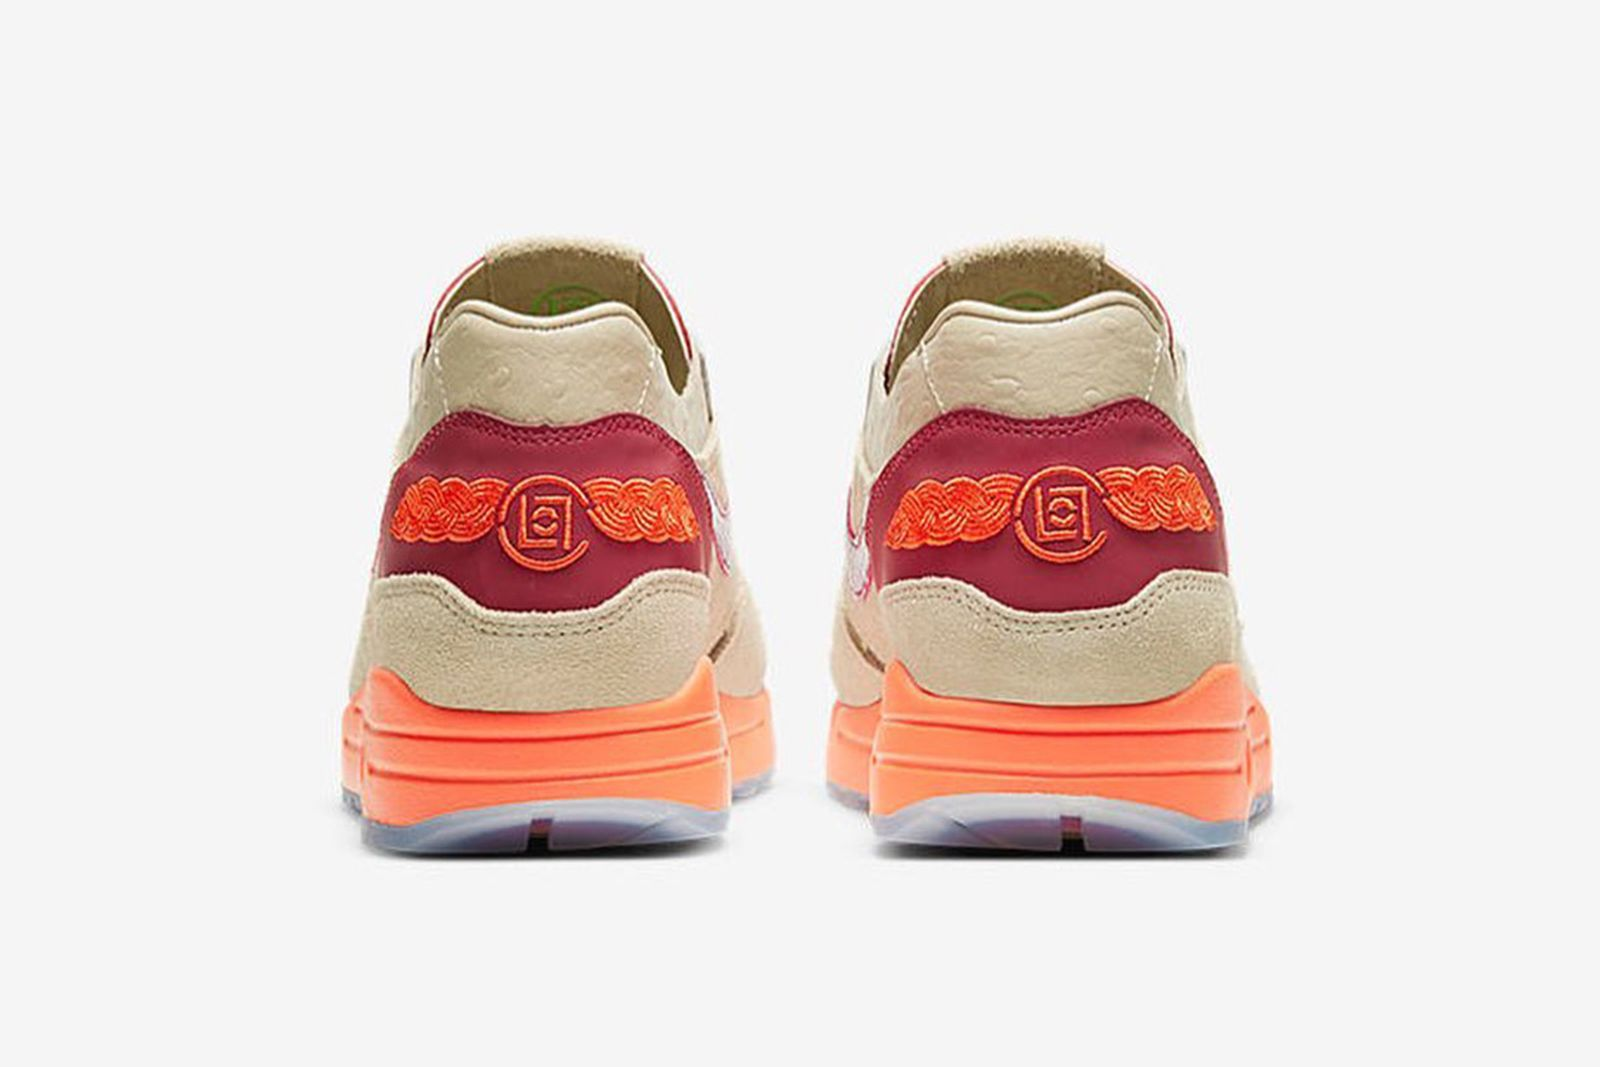 clot-nike-air-max-1-kiss-of-death-2021-release-date-price-03